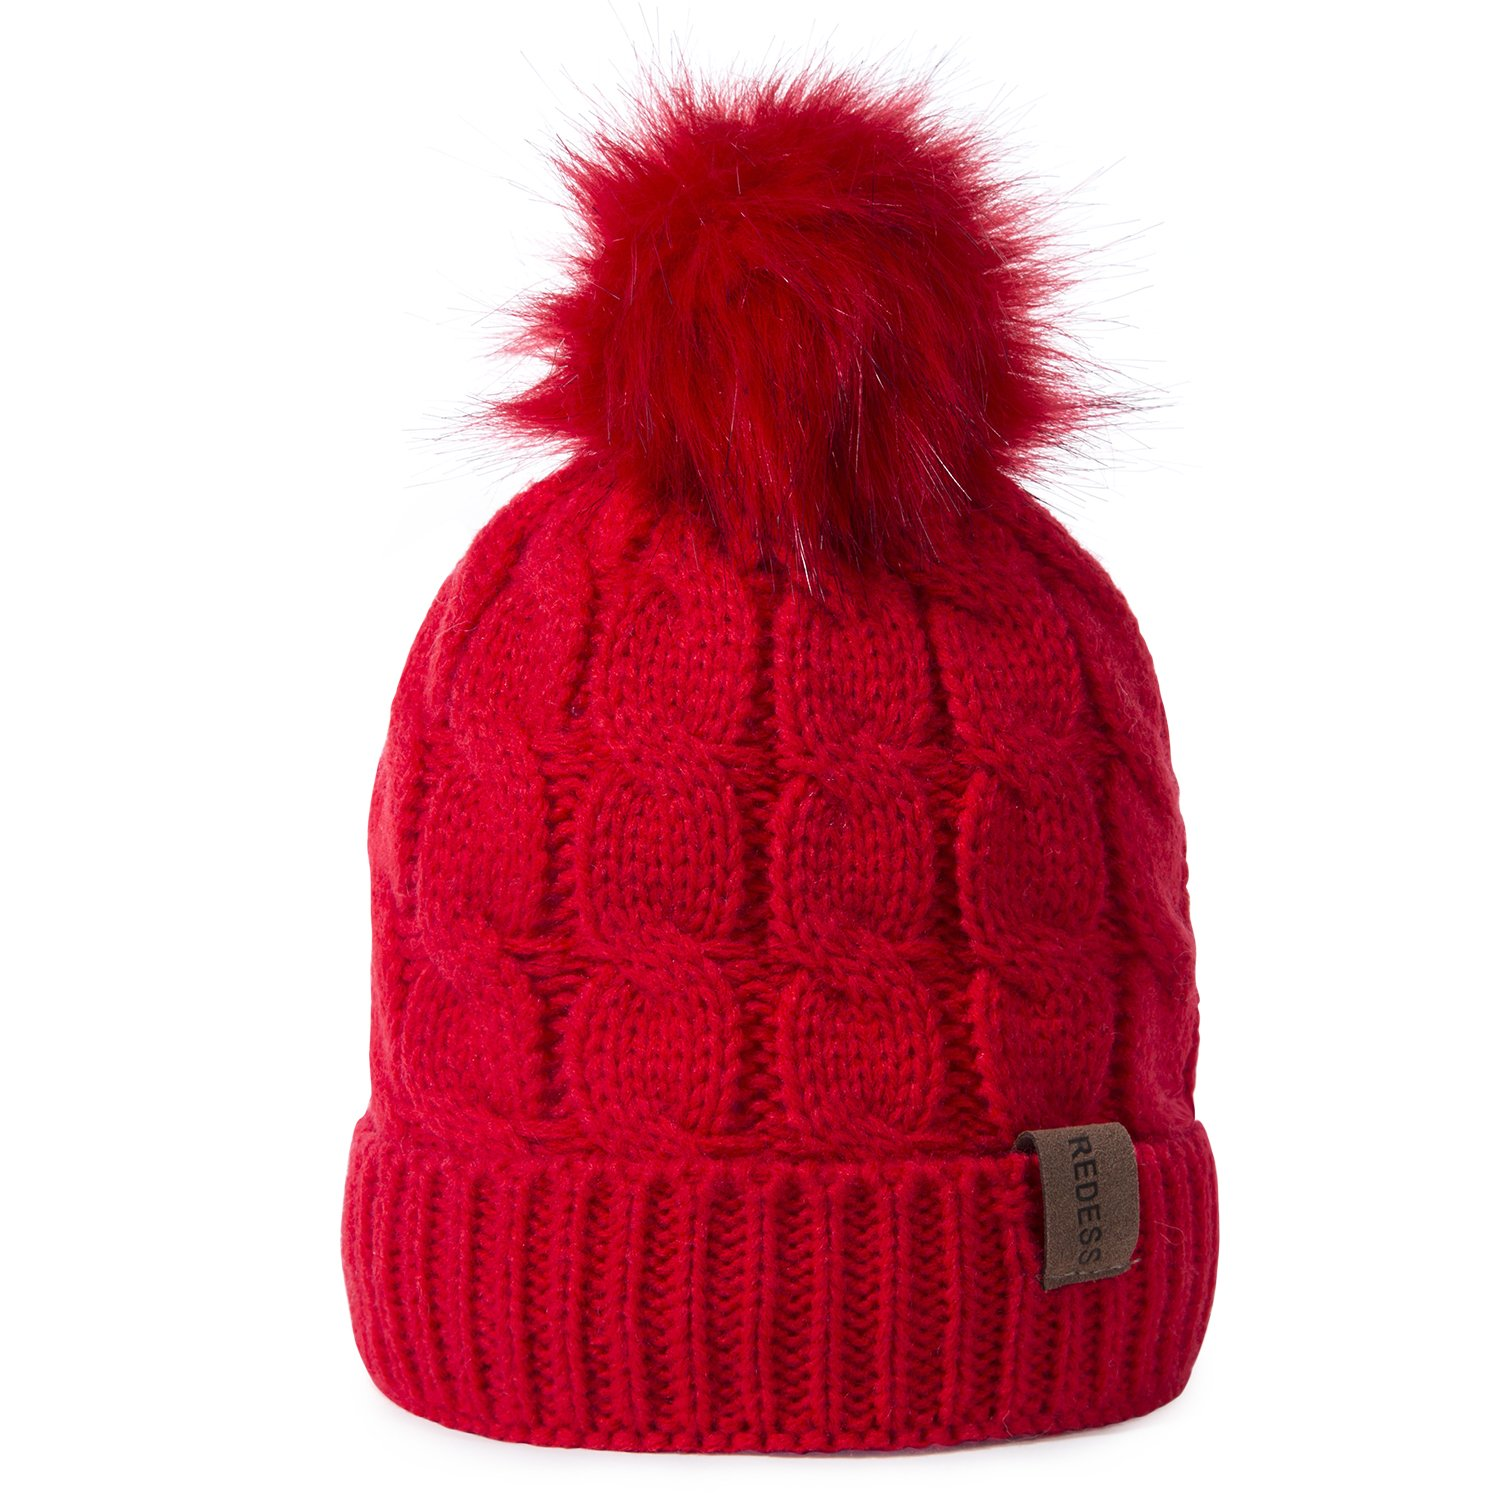 Kids Winter Warm Fleece Lined Hat, Baby Toddler Children's Beanie Pom Pom Knit Cap for Girls and Boys by REDESS (Red)